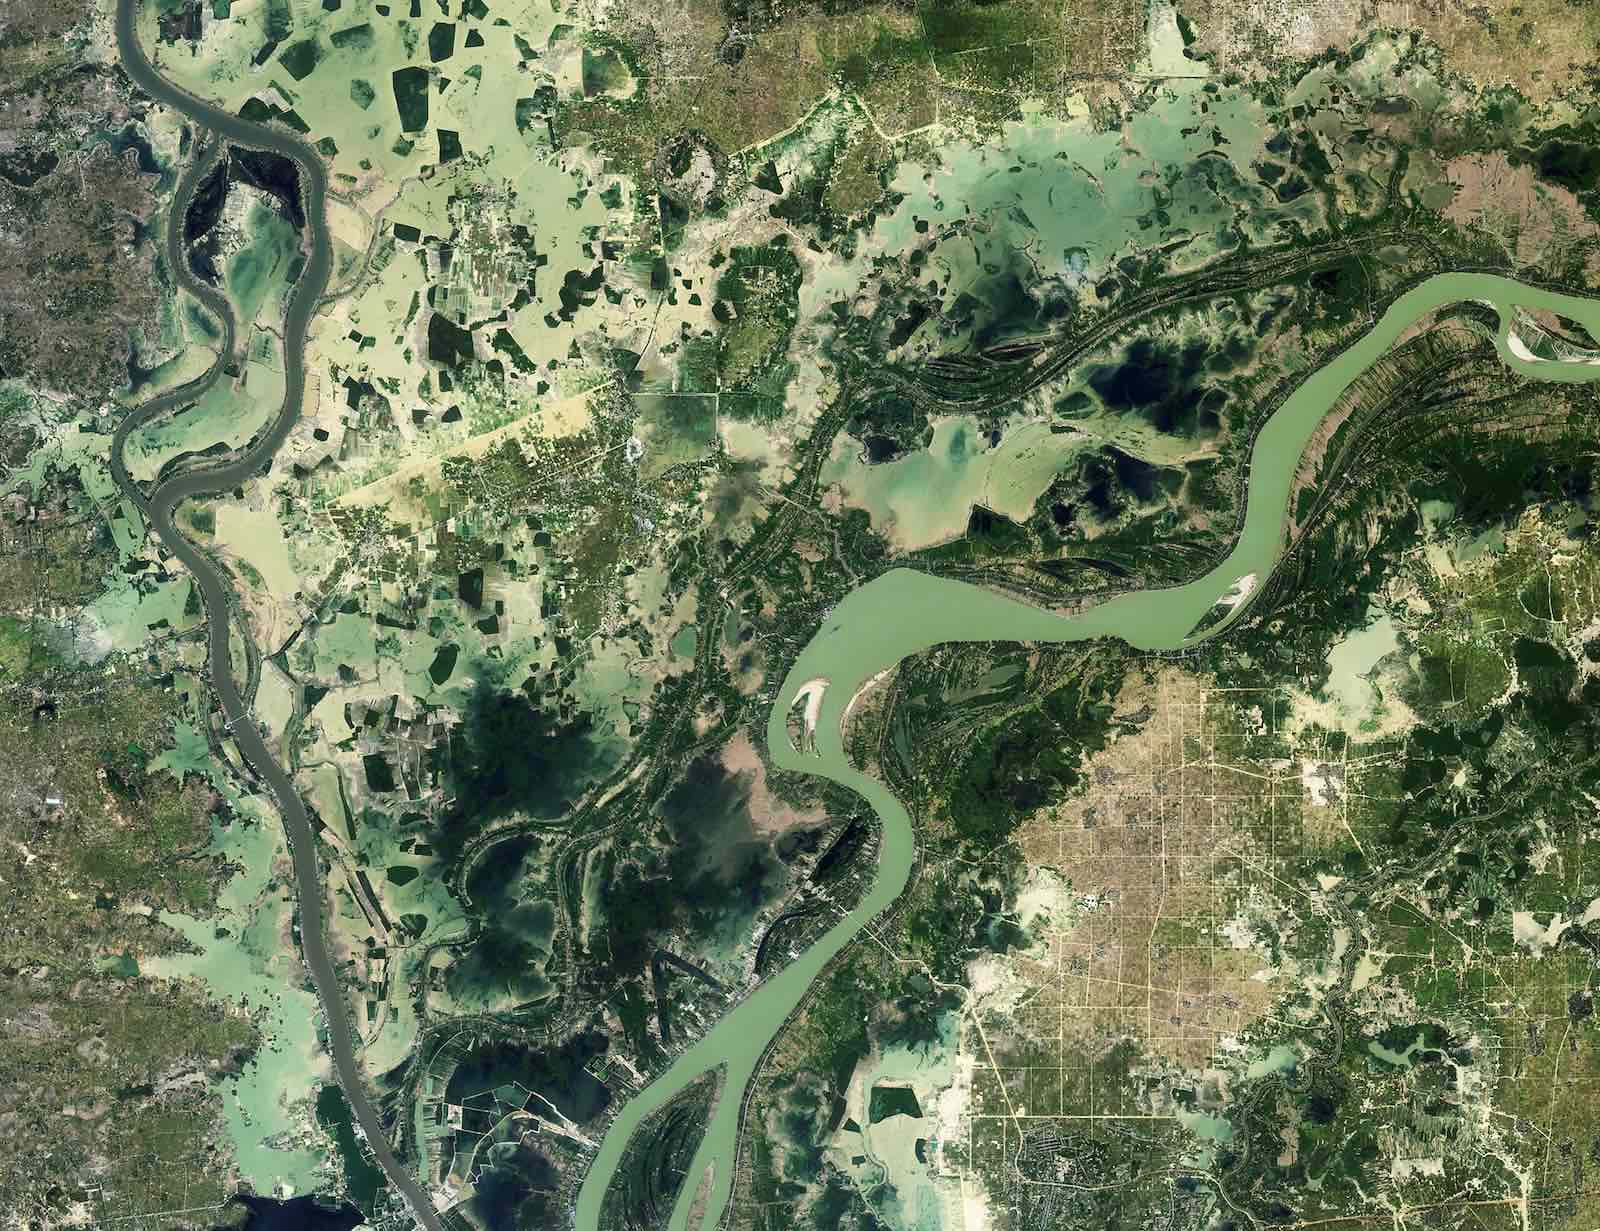 A section of the Mekong Delta (Photo: European Space Agency/Flickr)